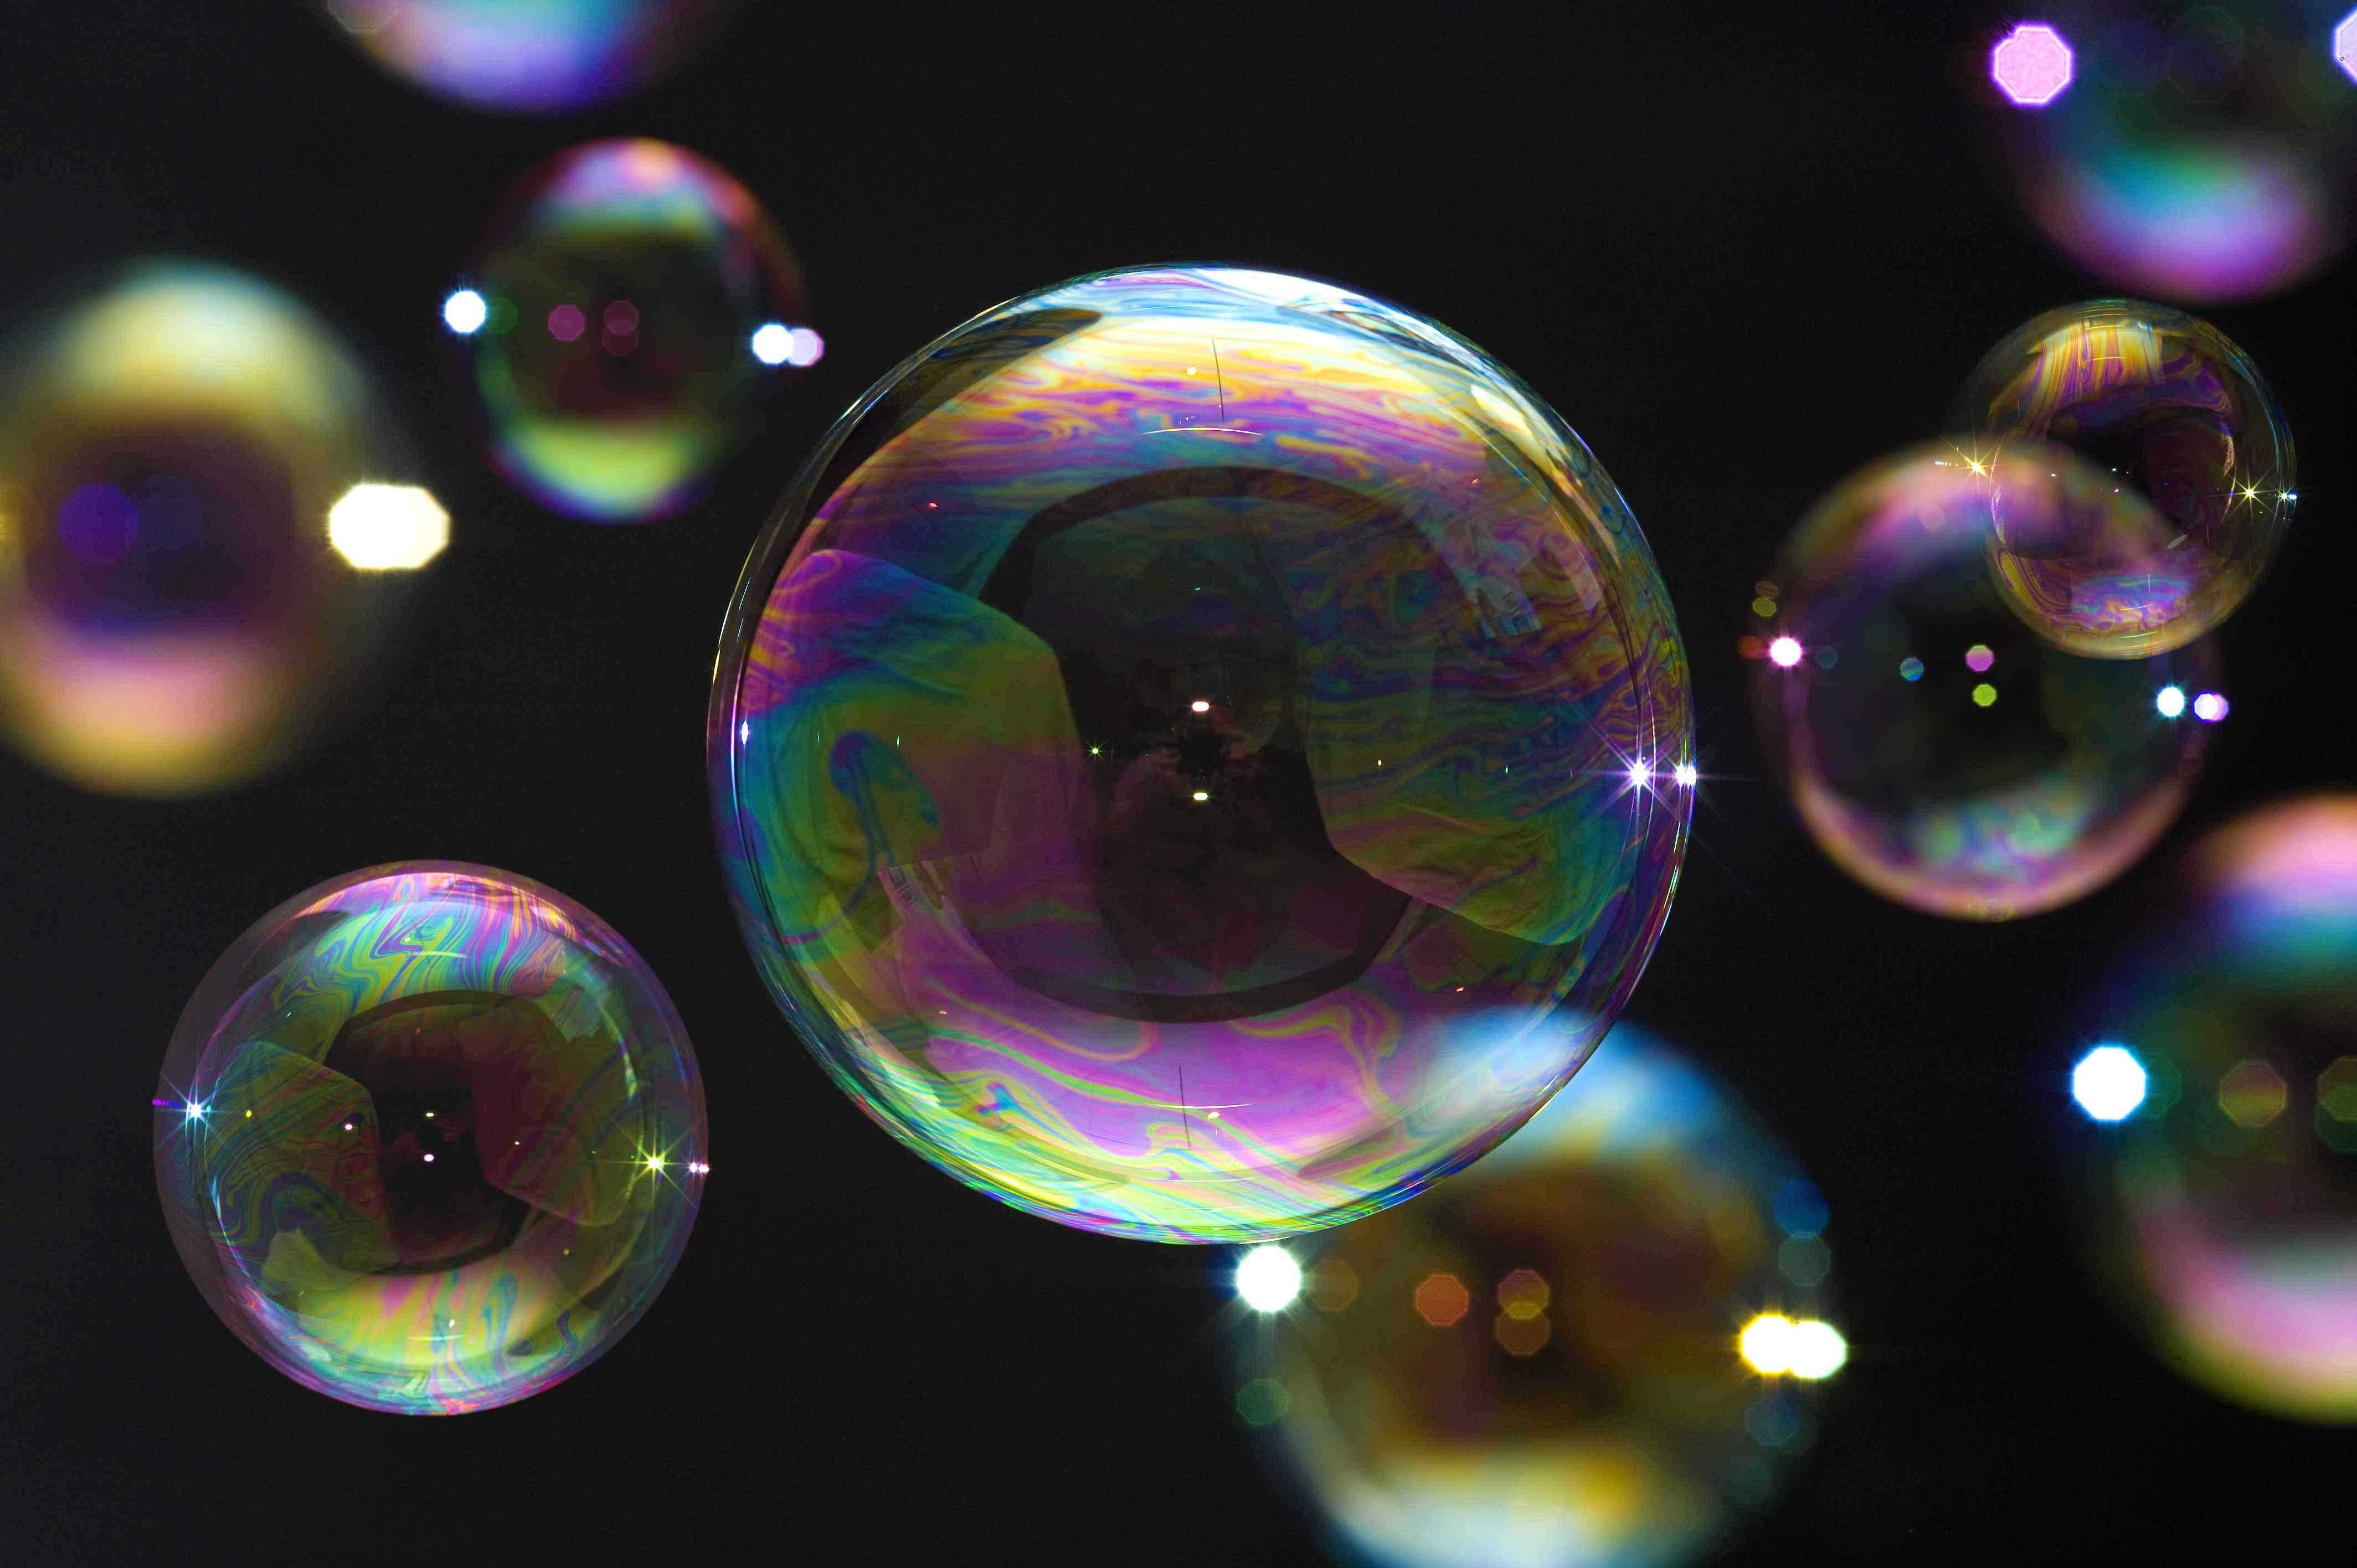 blowing-bubbles-small-113406397_0